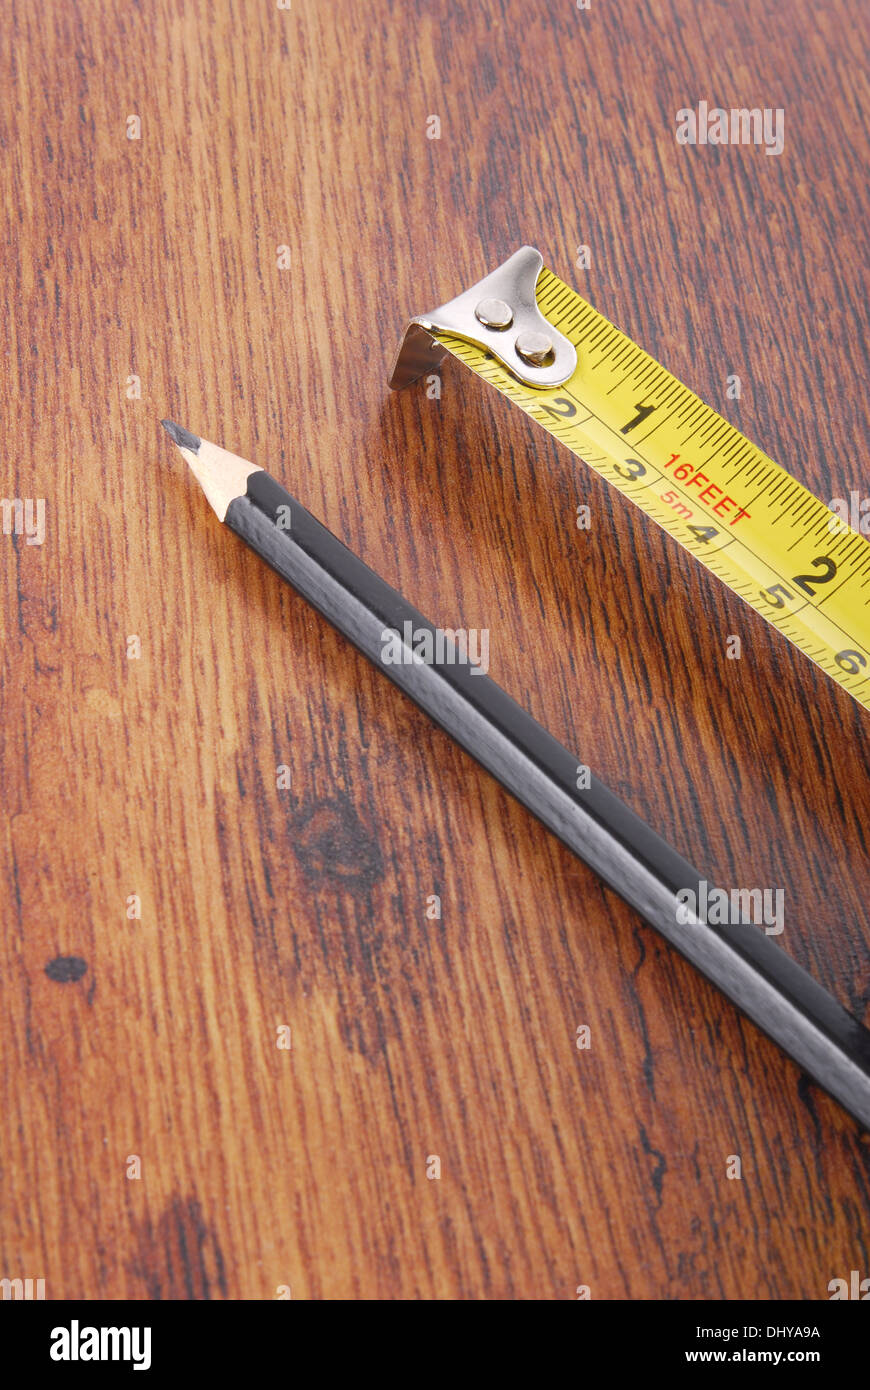 laminate and tape measure and pencil - Stock Image